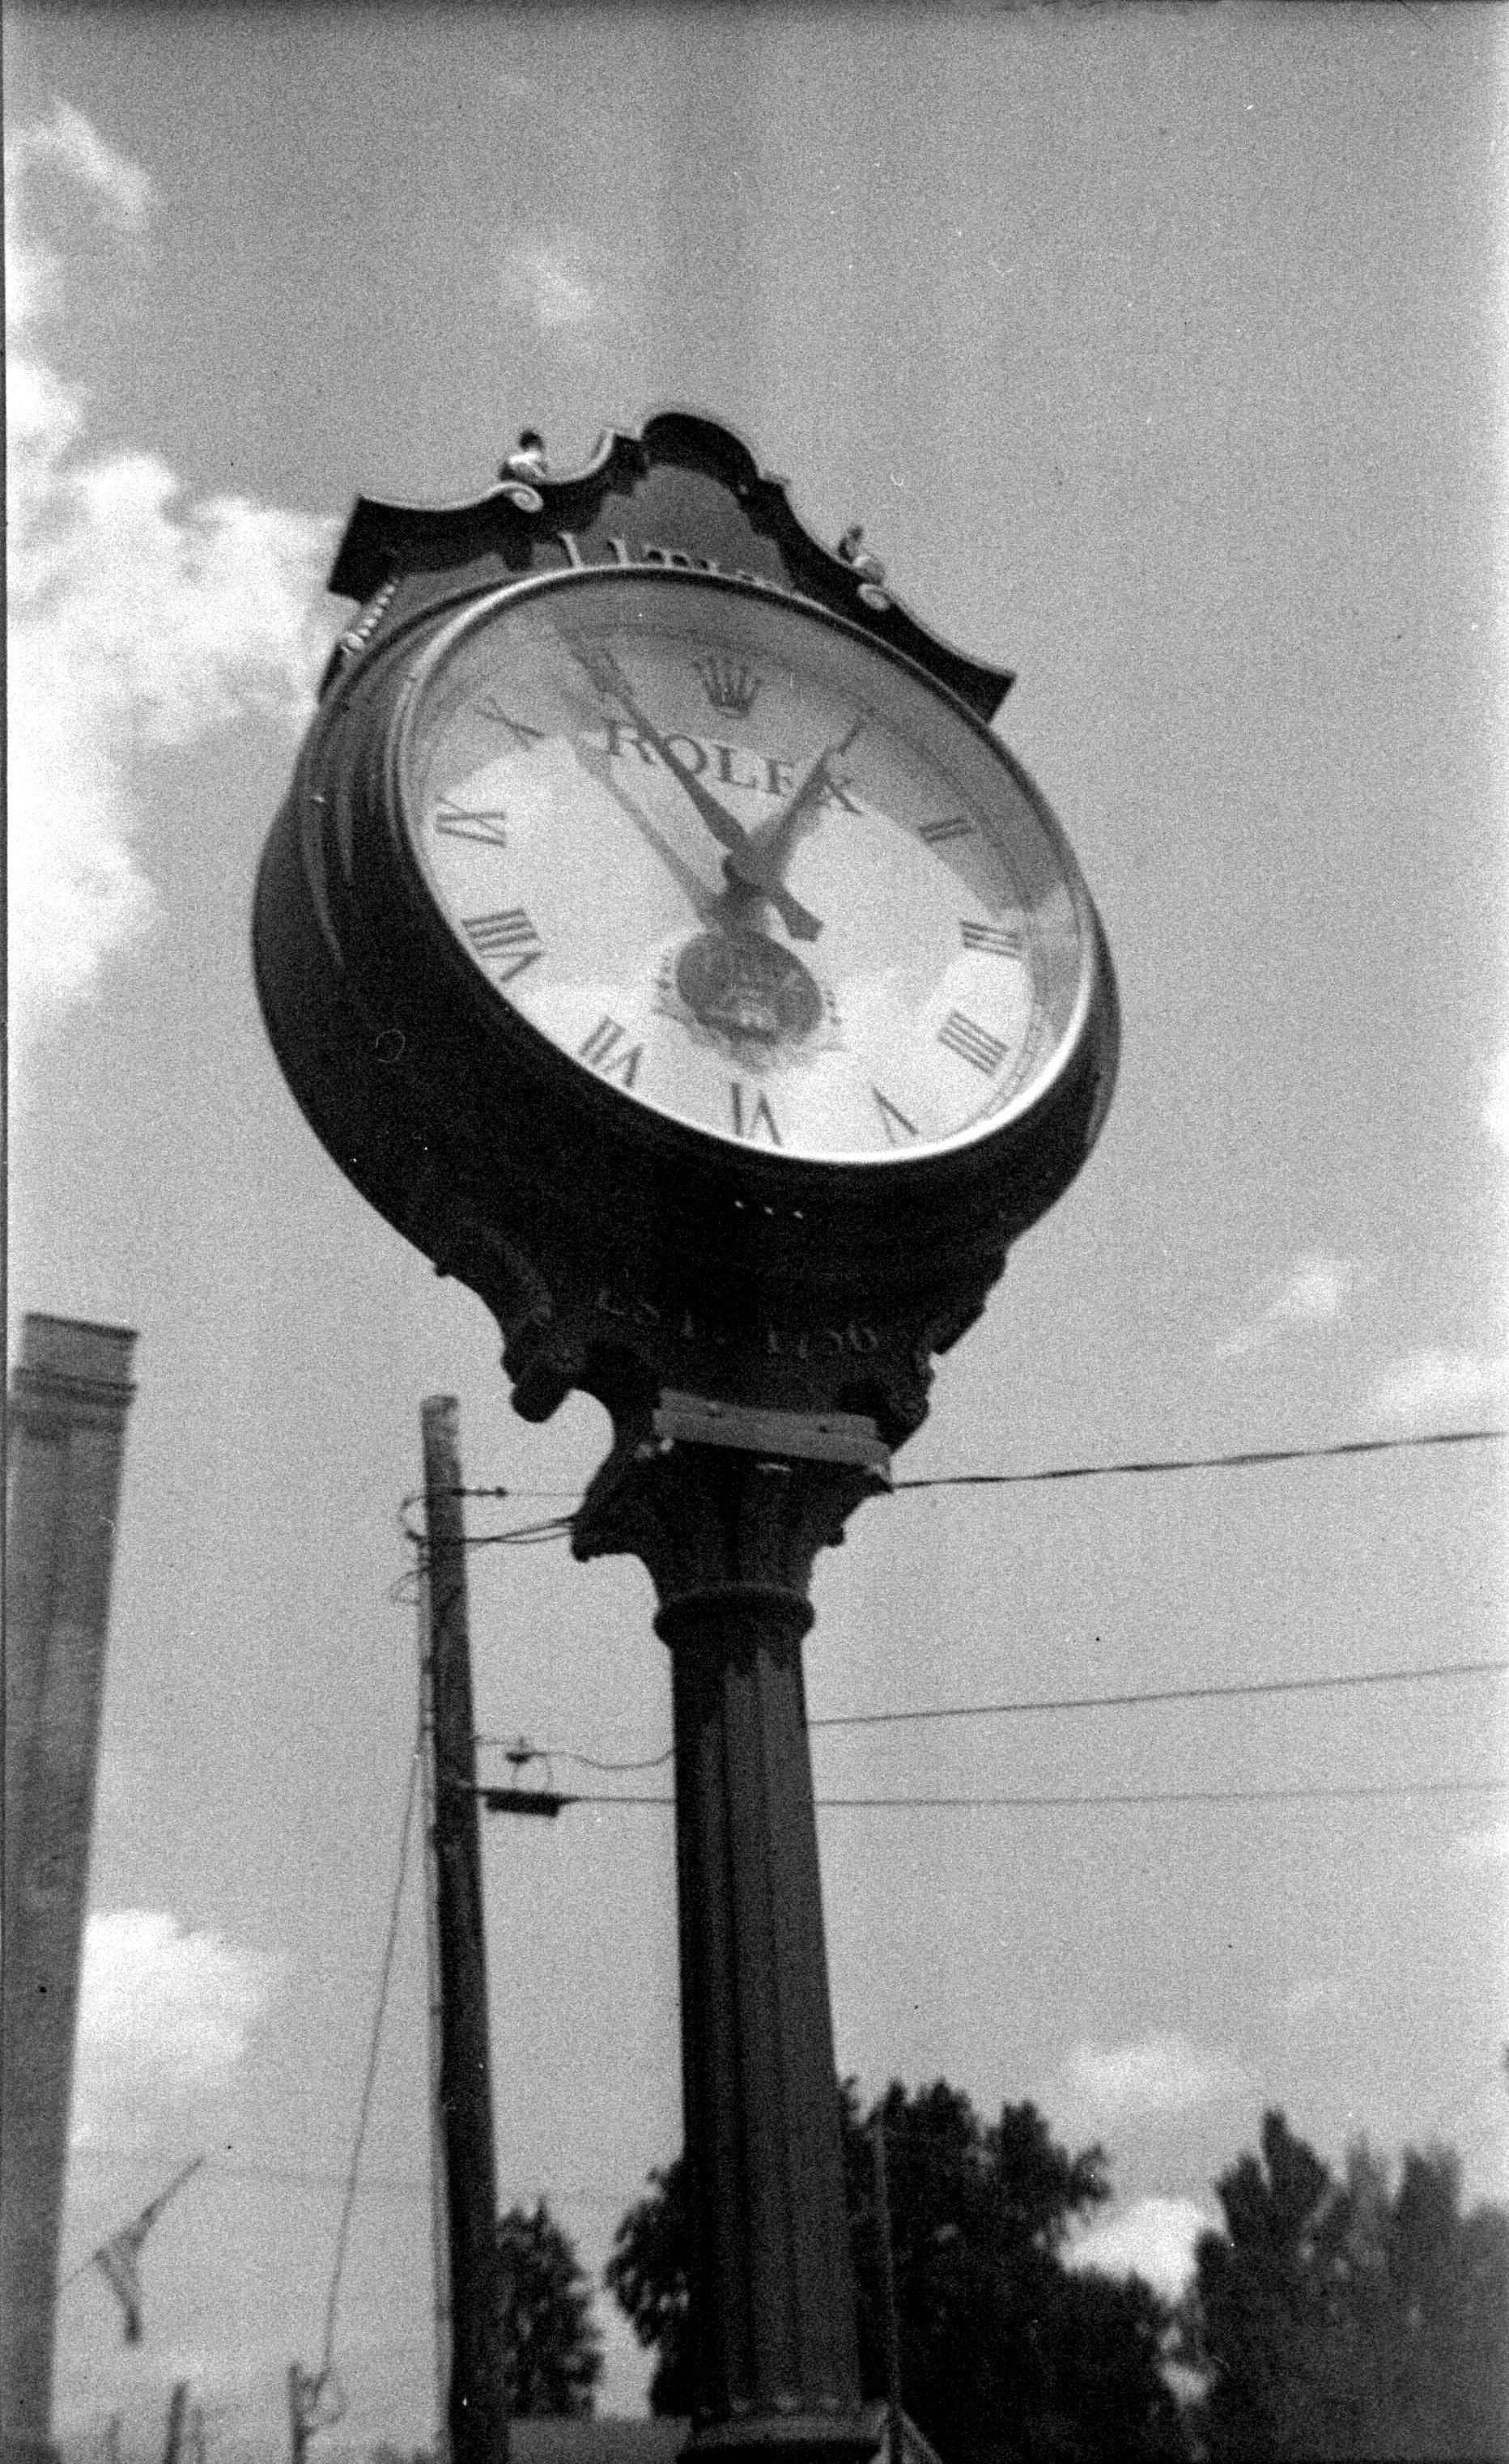 lititz_clock.jpg